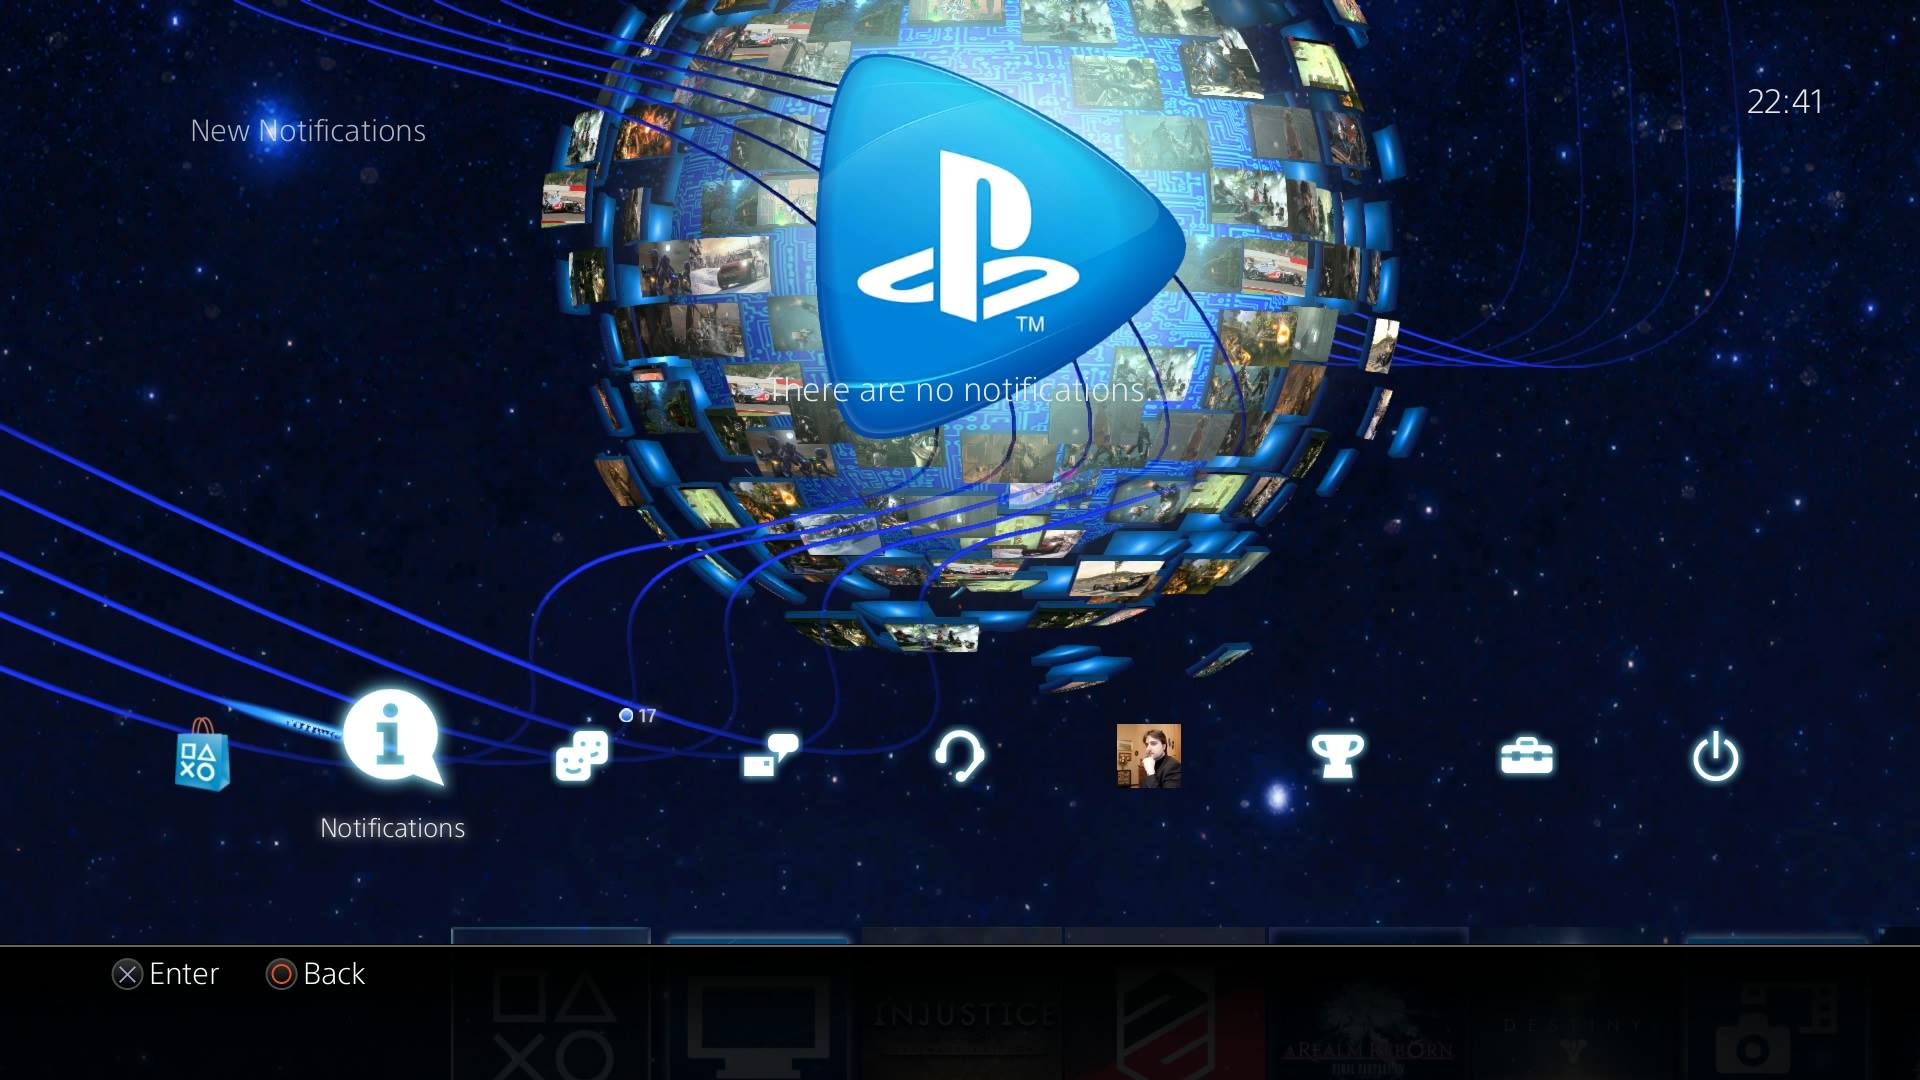 50+] Cool Dynamic Wallpapers for PS3 on WallpaperSafari